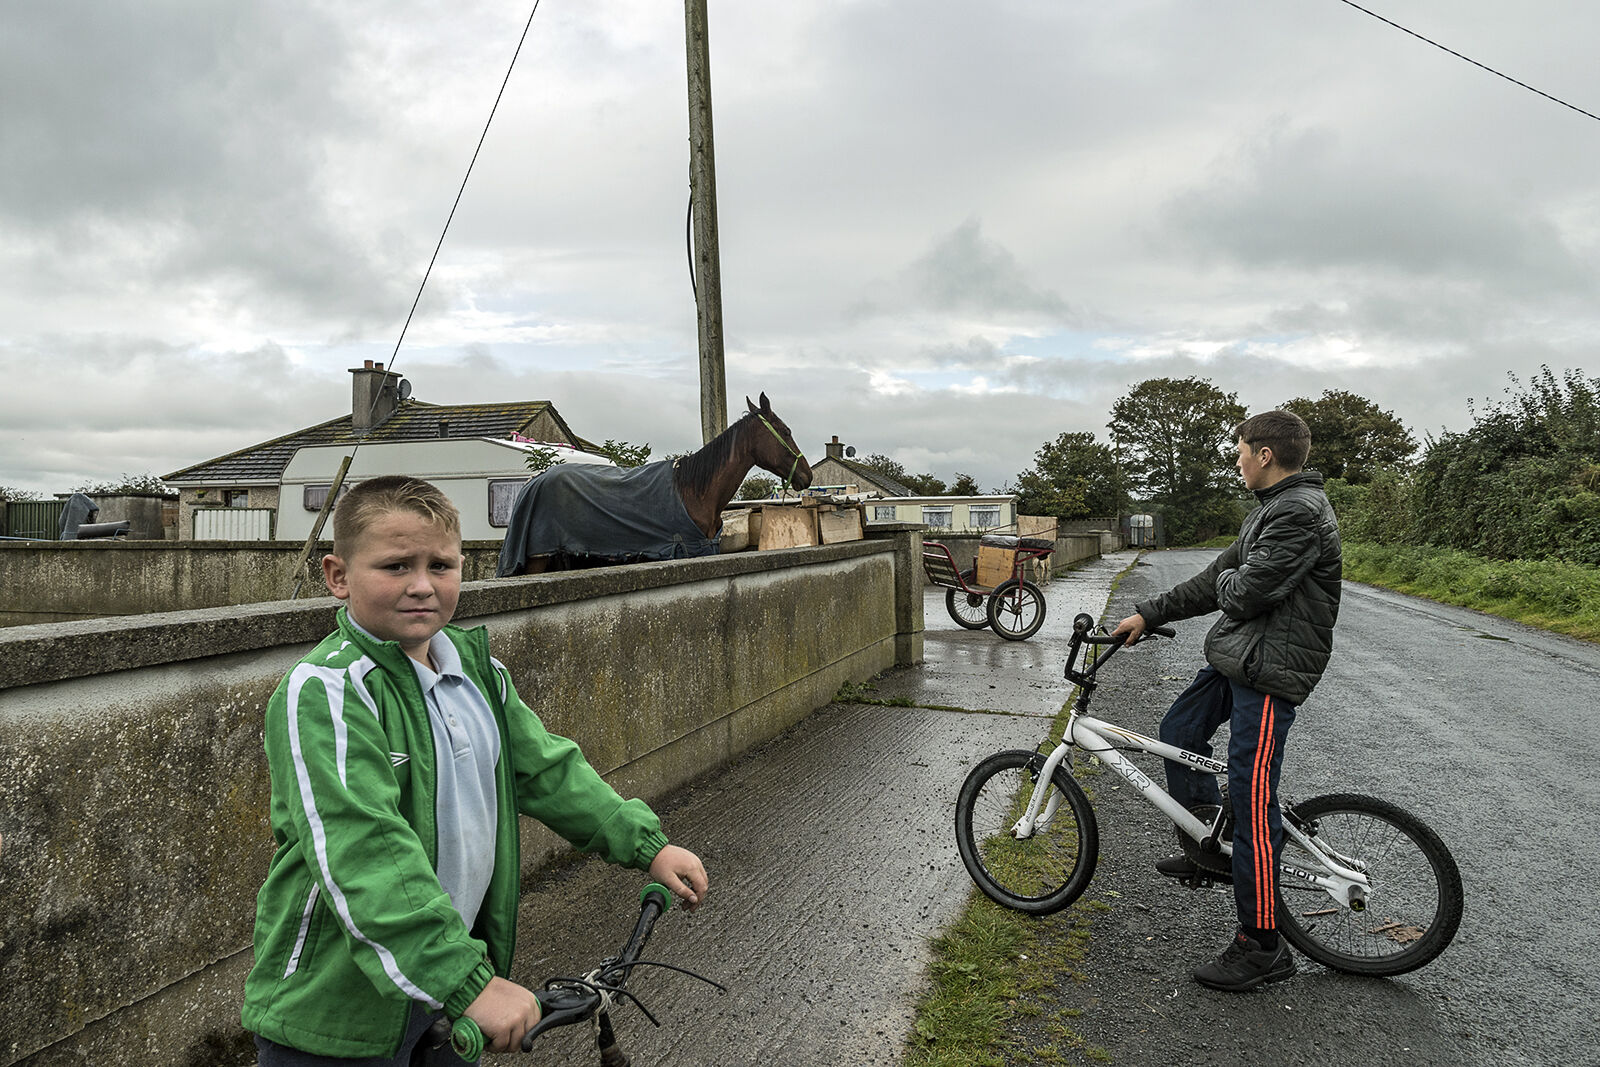 Johnny and Tommy, Tipperary, Ireland 2019